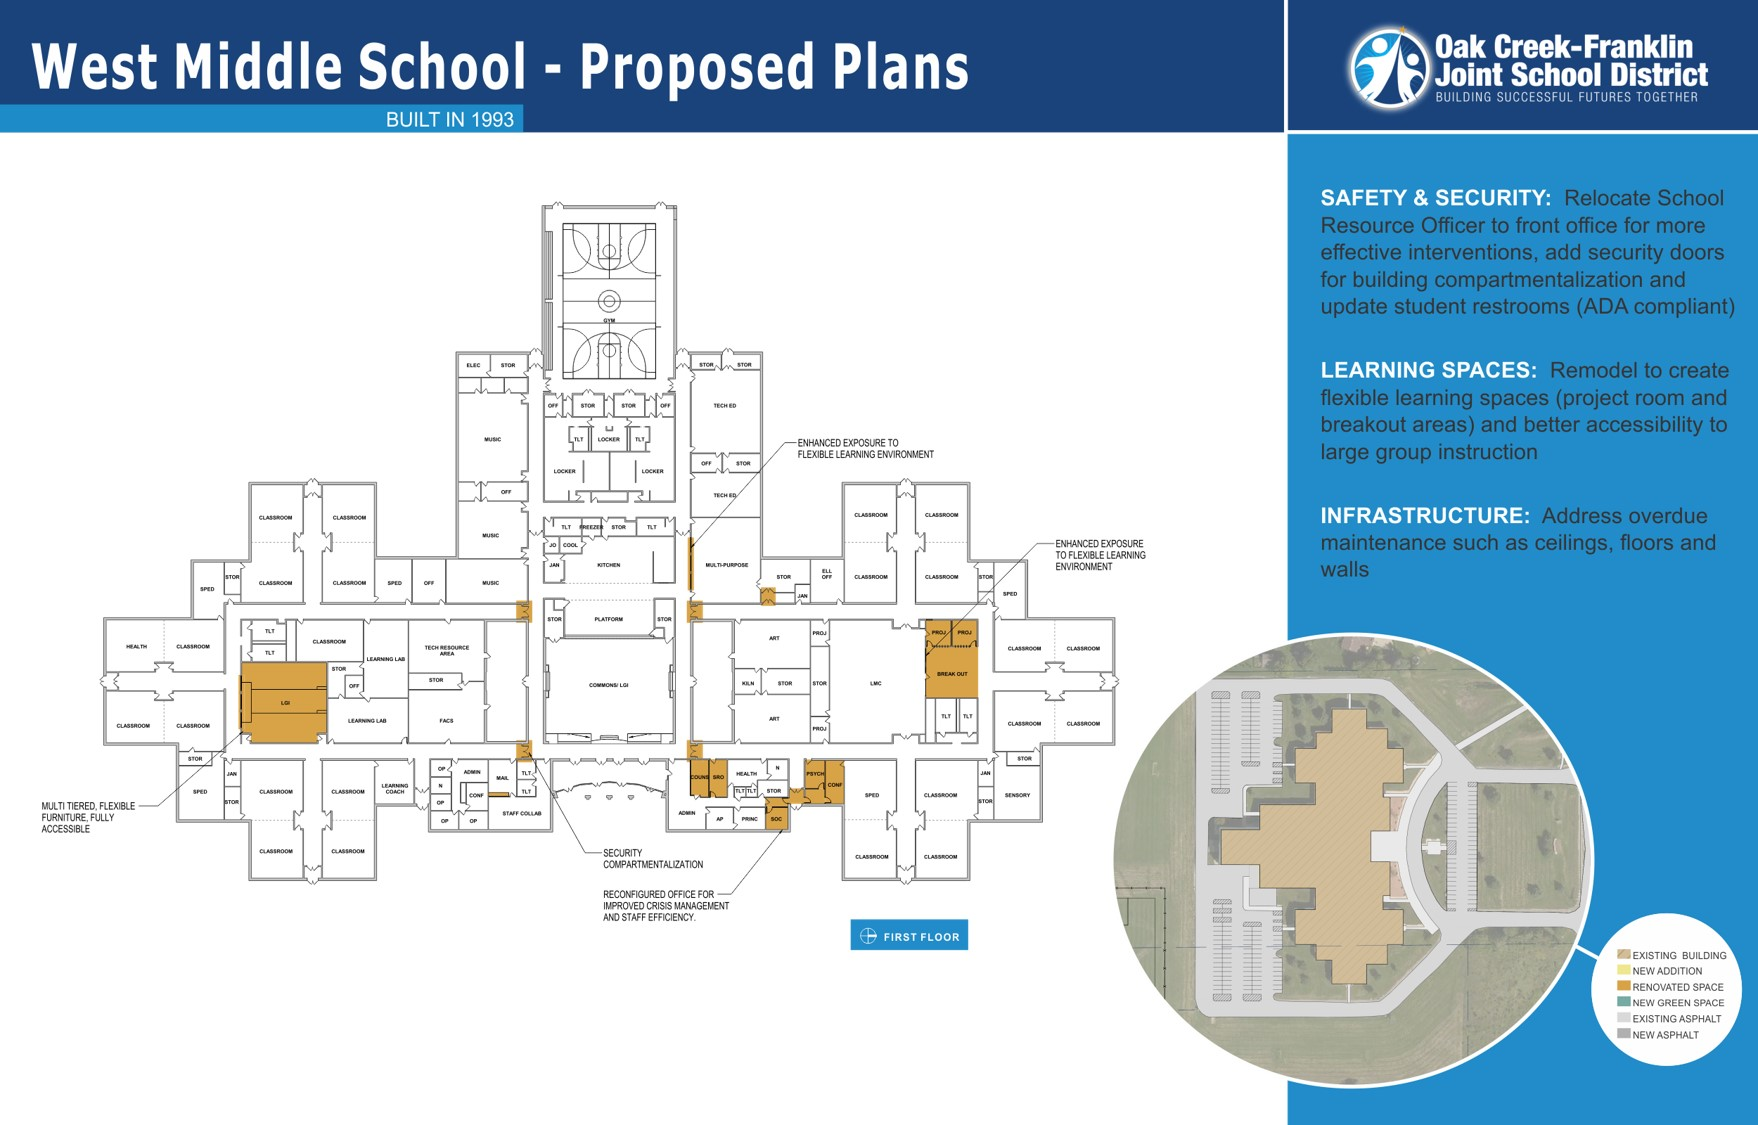 West Middle School proposed plans for 2018 referendum